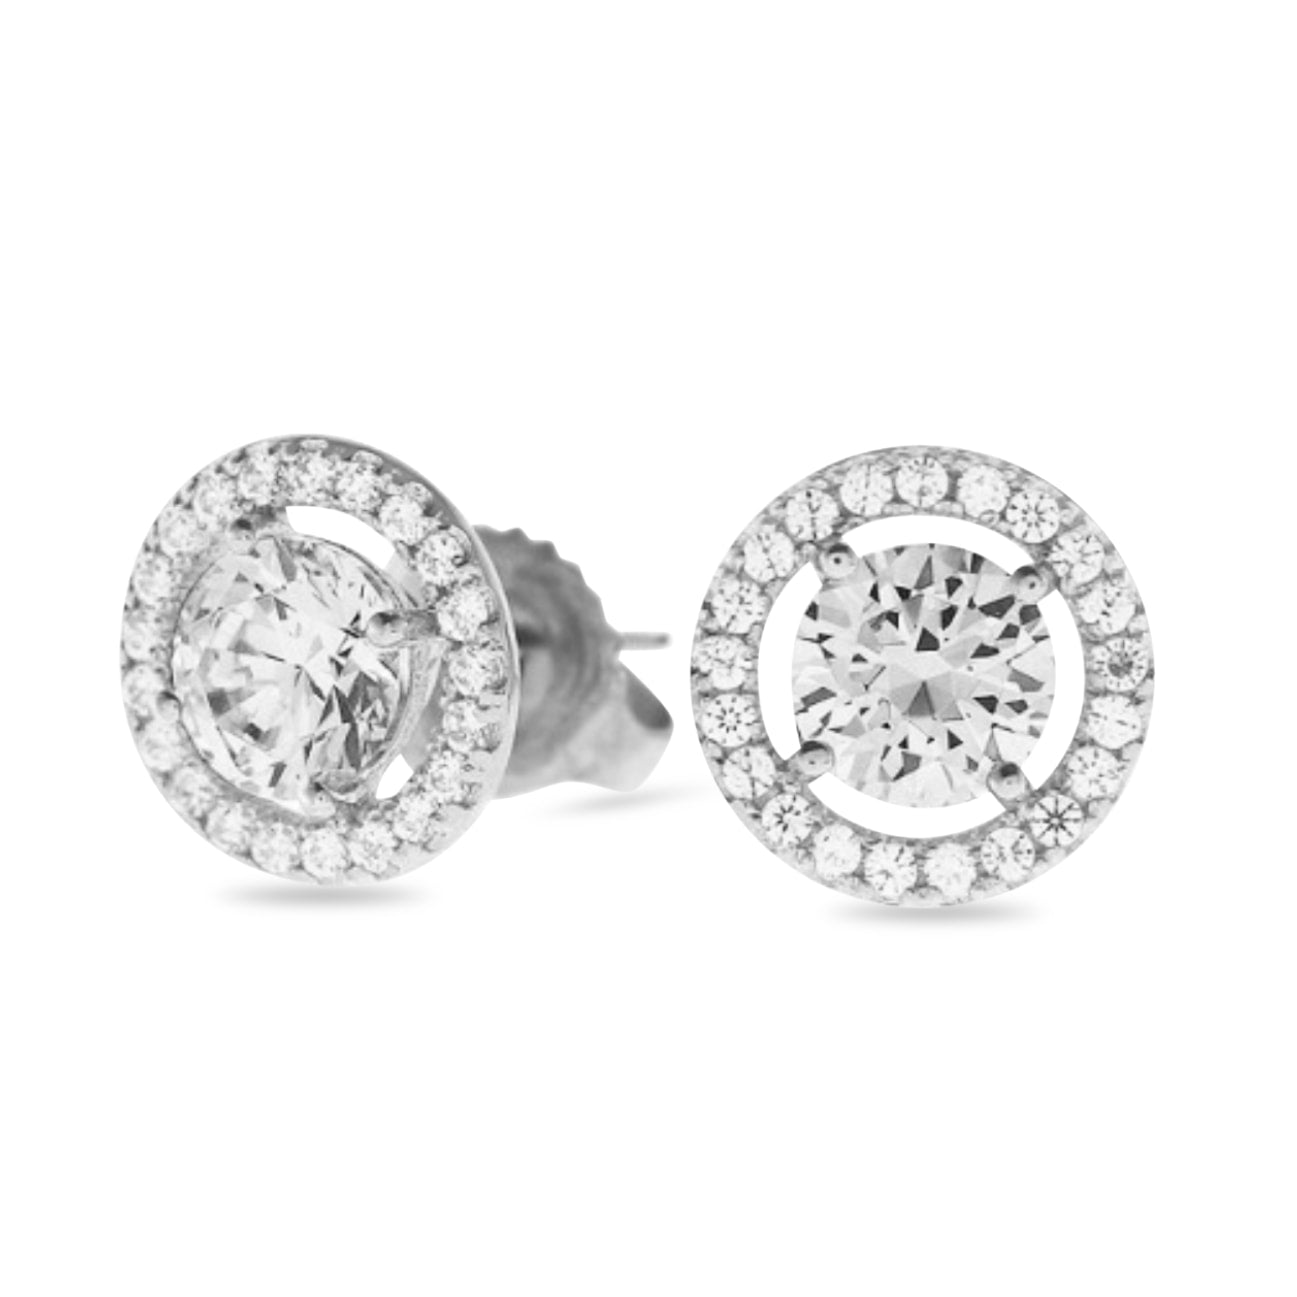 Celeste Halo Diamond Earrings in 18k White Gold Vermeil